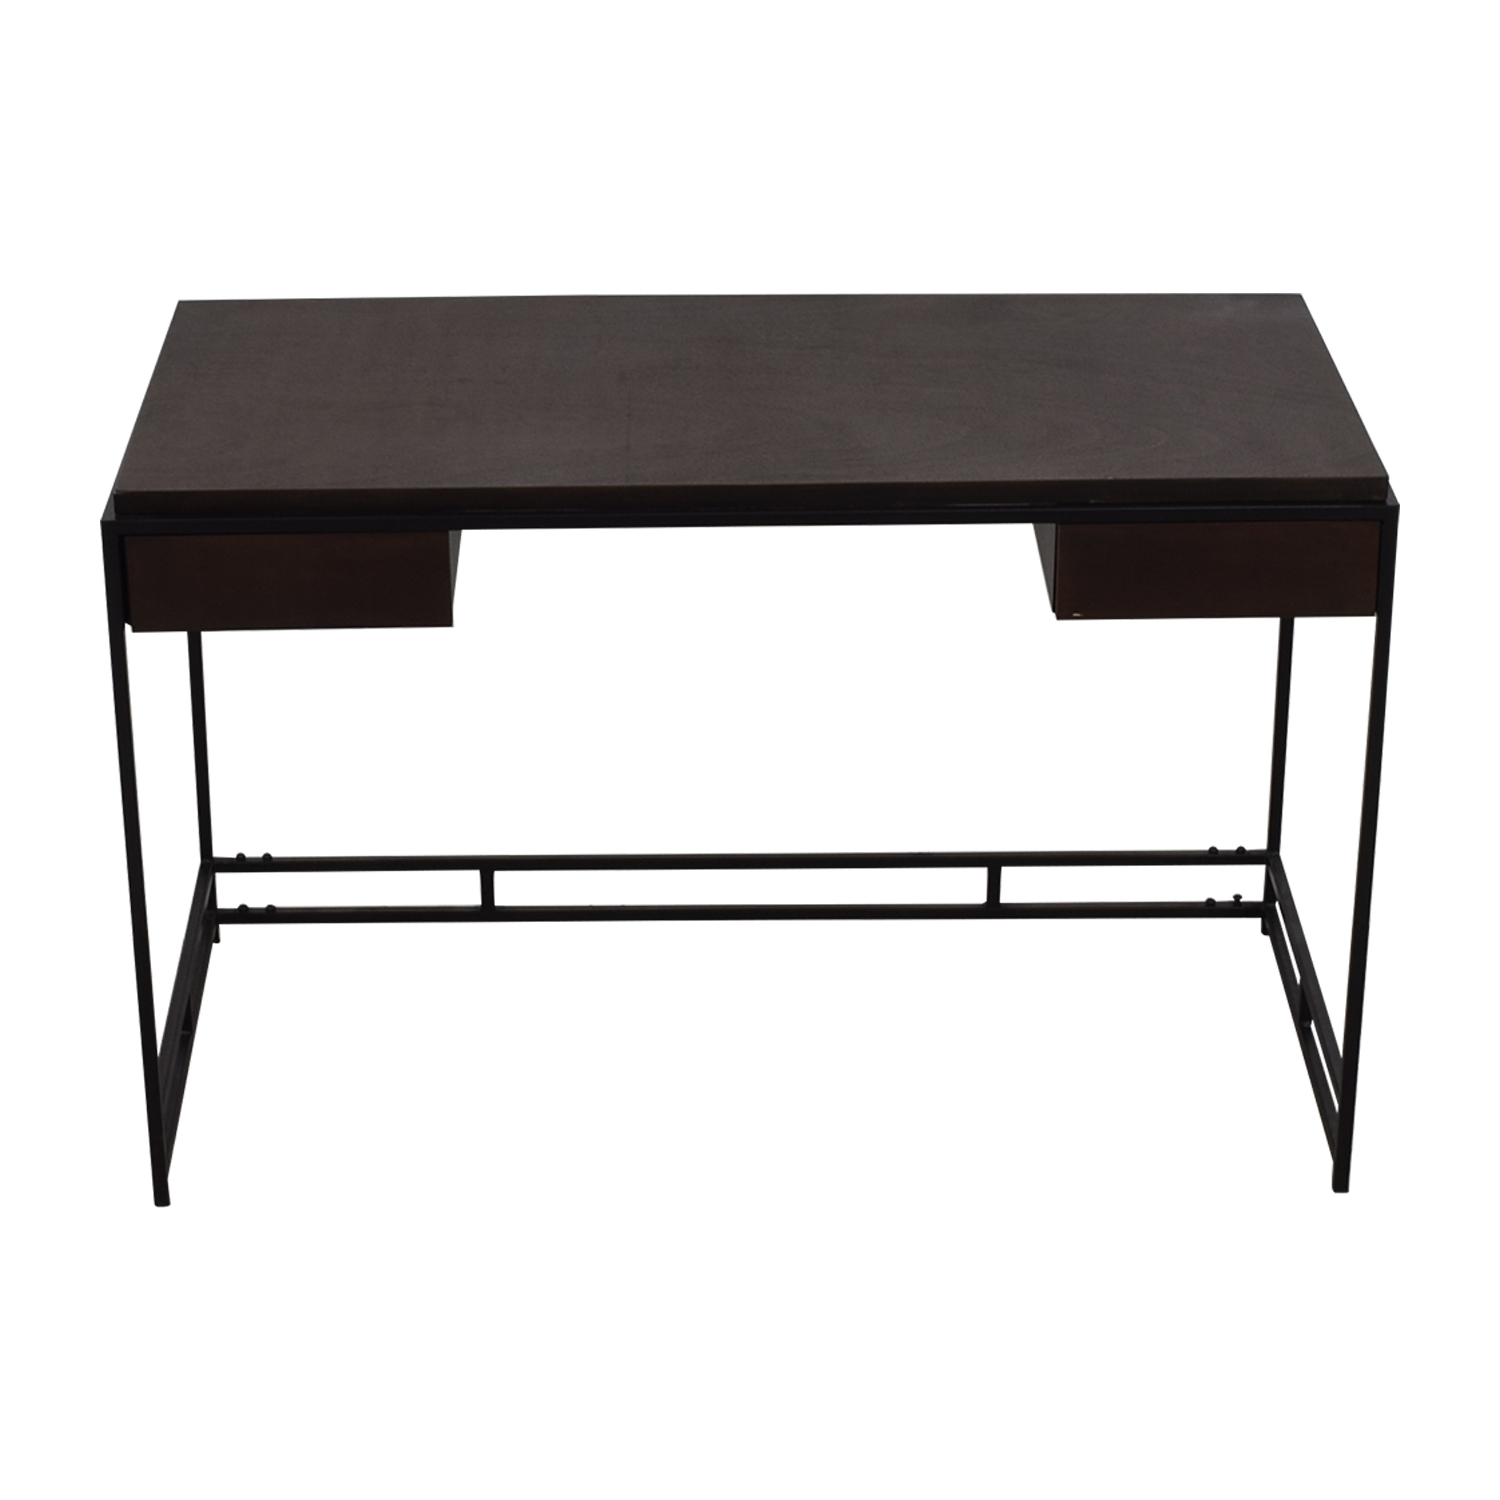 ... Buy Zuo Modern Furniture Zuo Modern Furniture Espresso U0026 Metal  Two Drawer Studio Desk Online ...